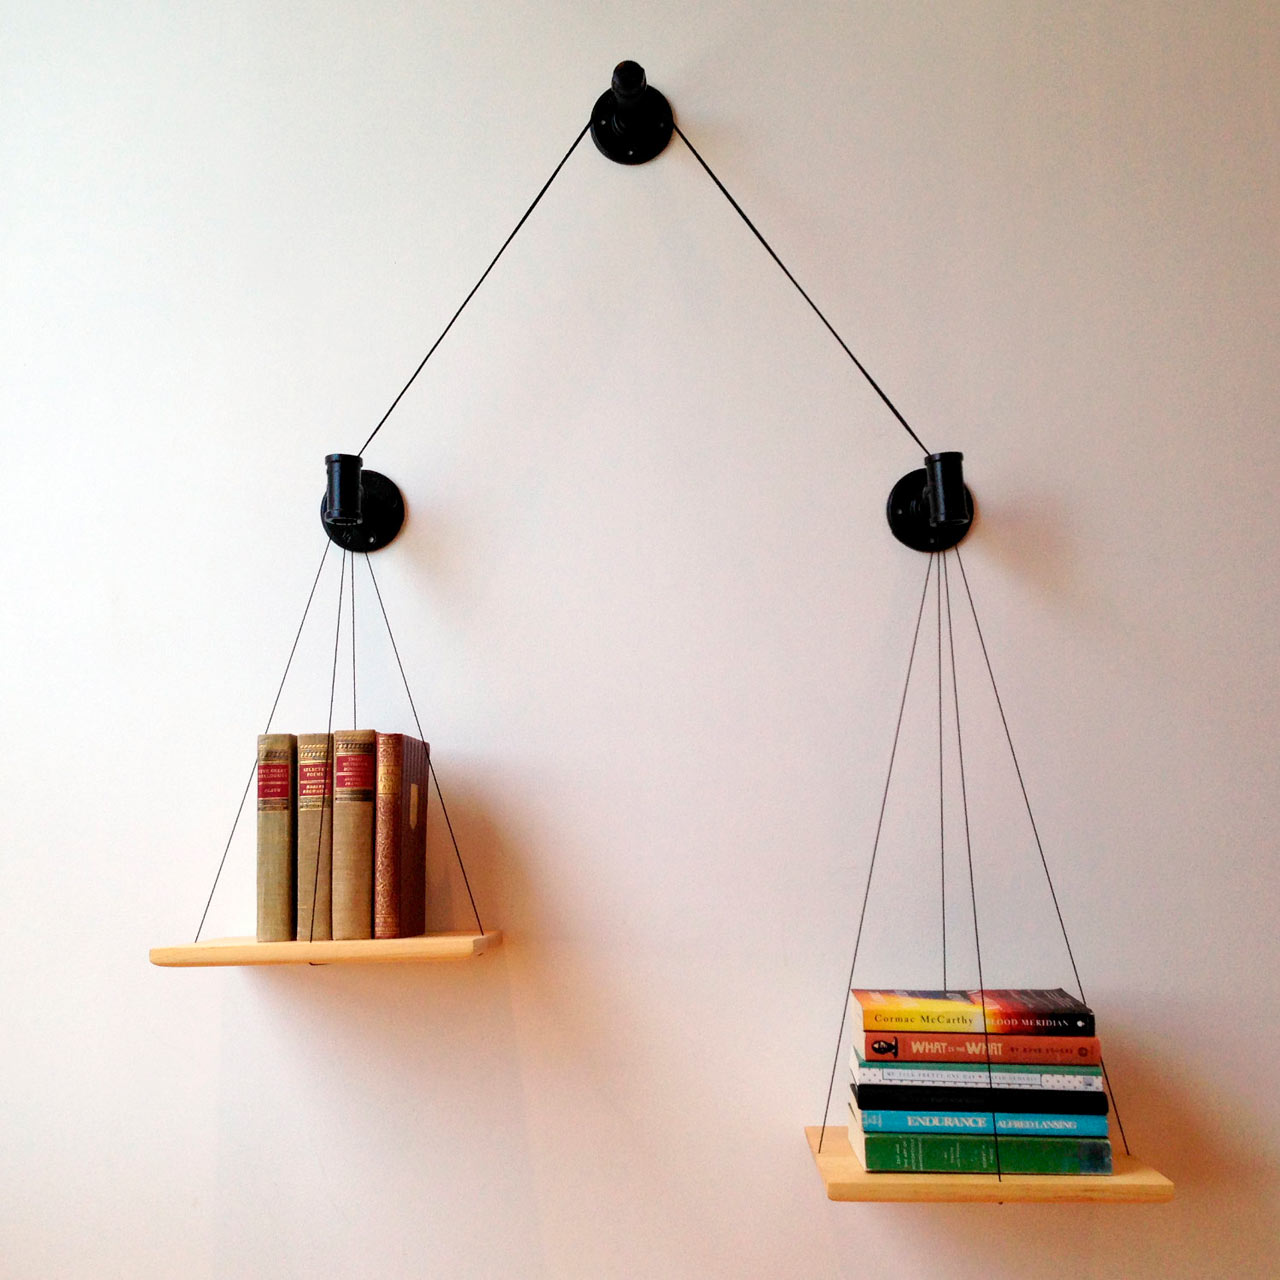 Show Off How Many Books You've Read with this Balancing Bookshelf